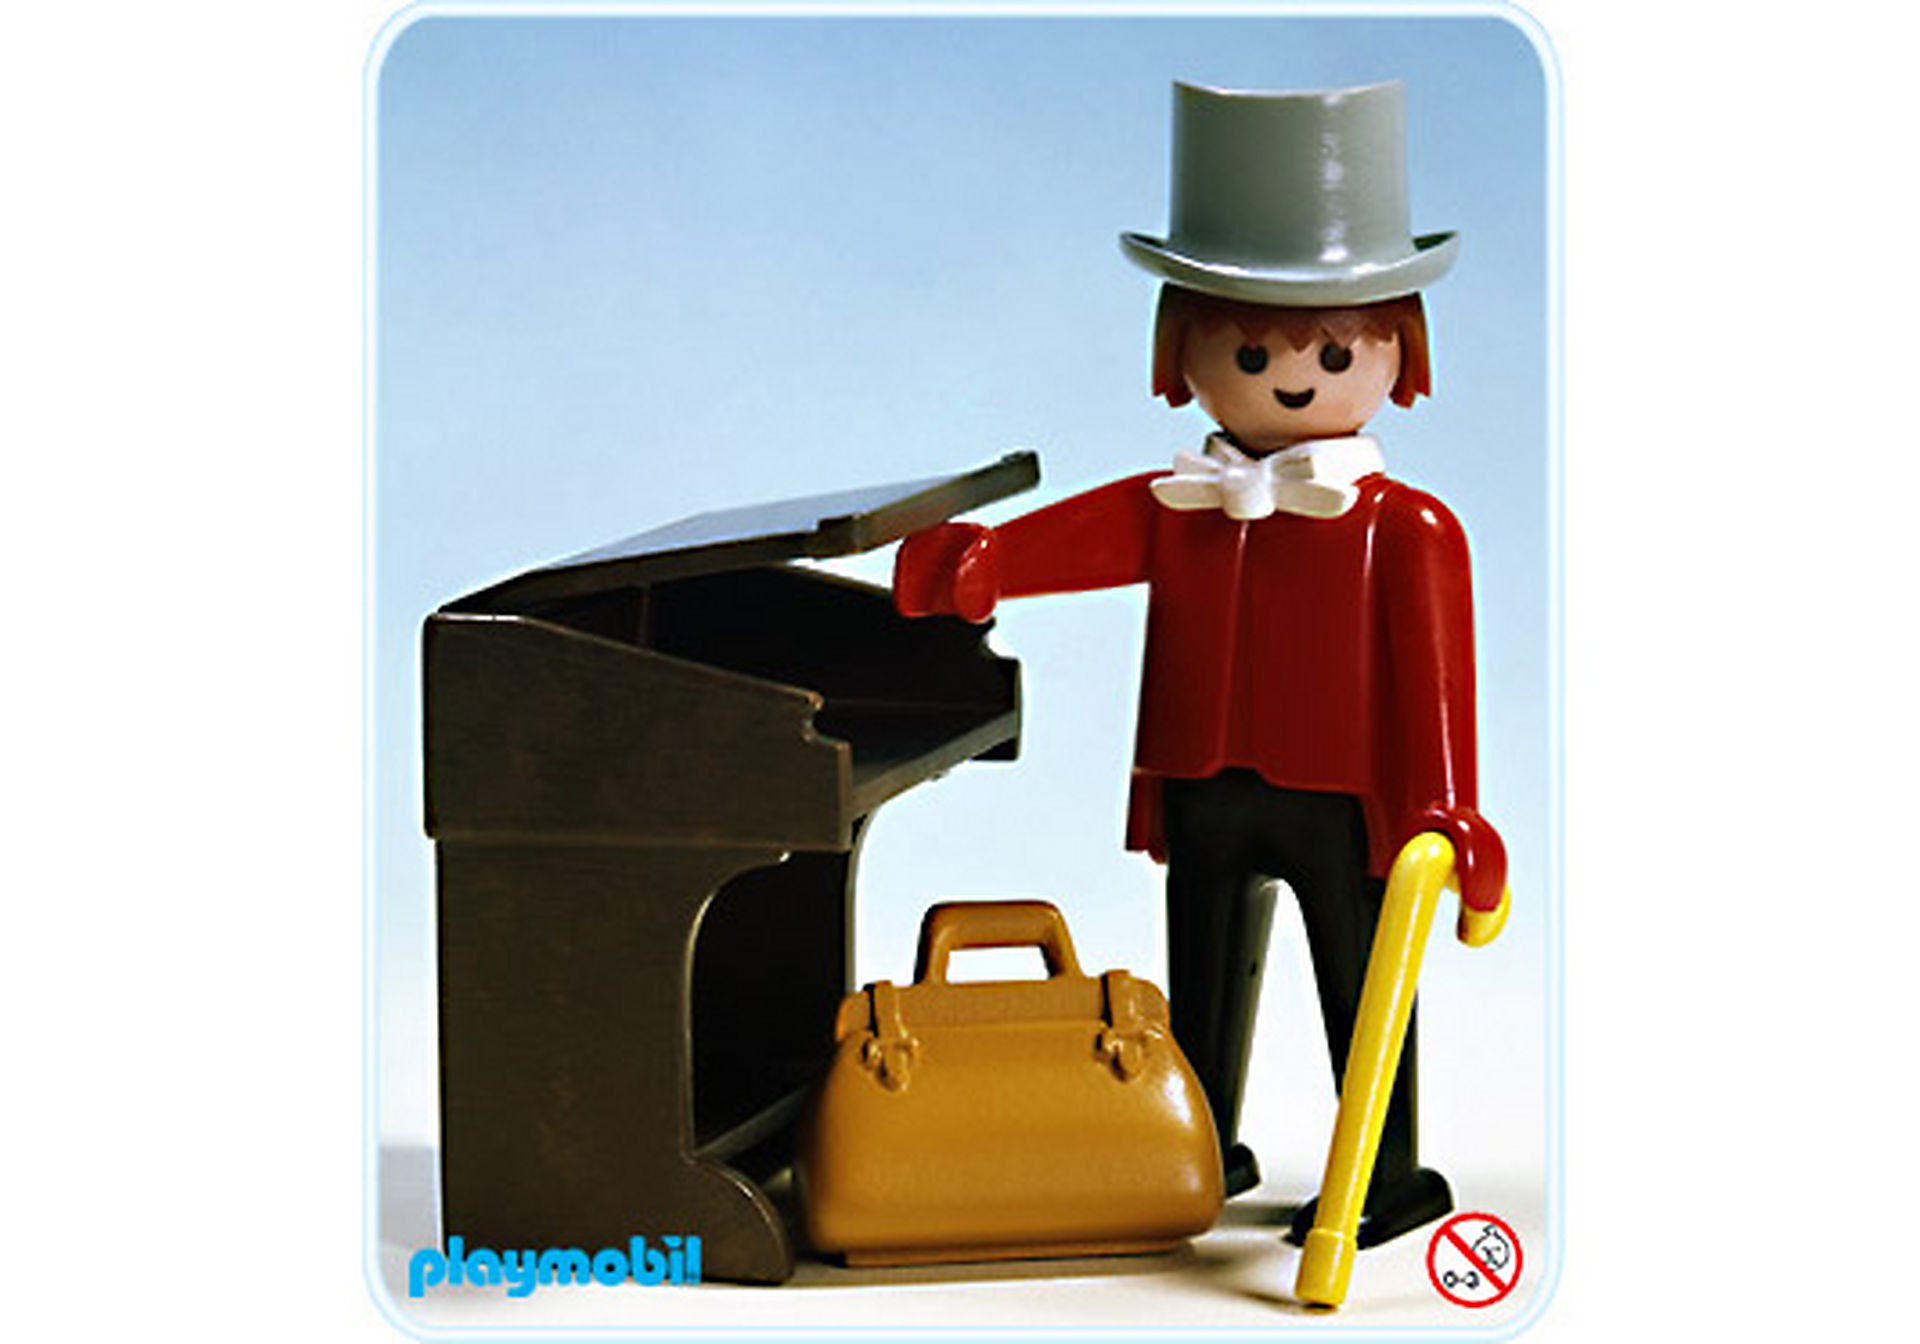 http://media.playmobil.com/i/playmobil/3346-A_product_detail/Mann mit Zylinder (Western-Gentleman)